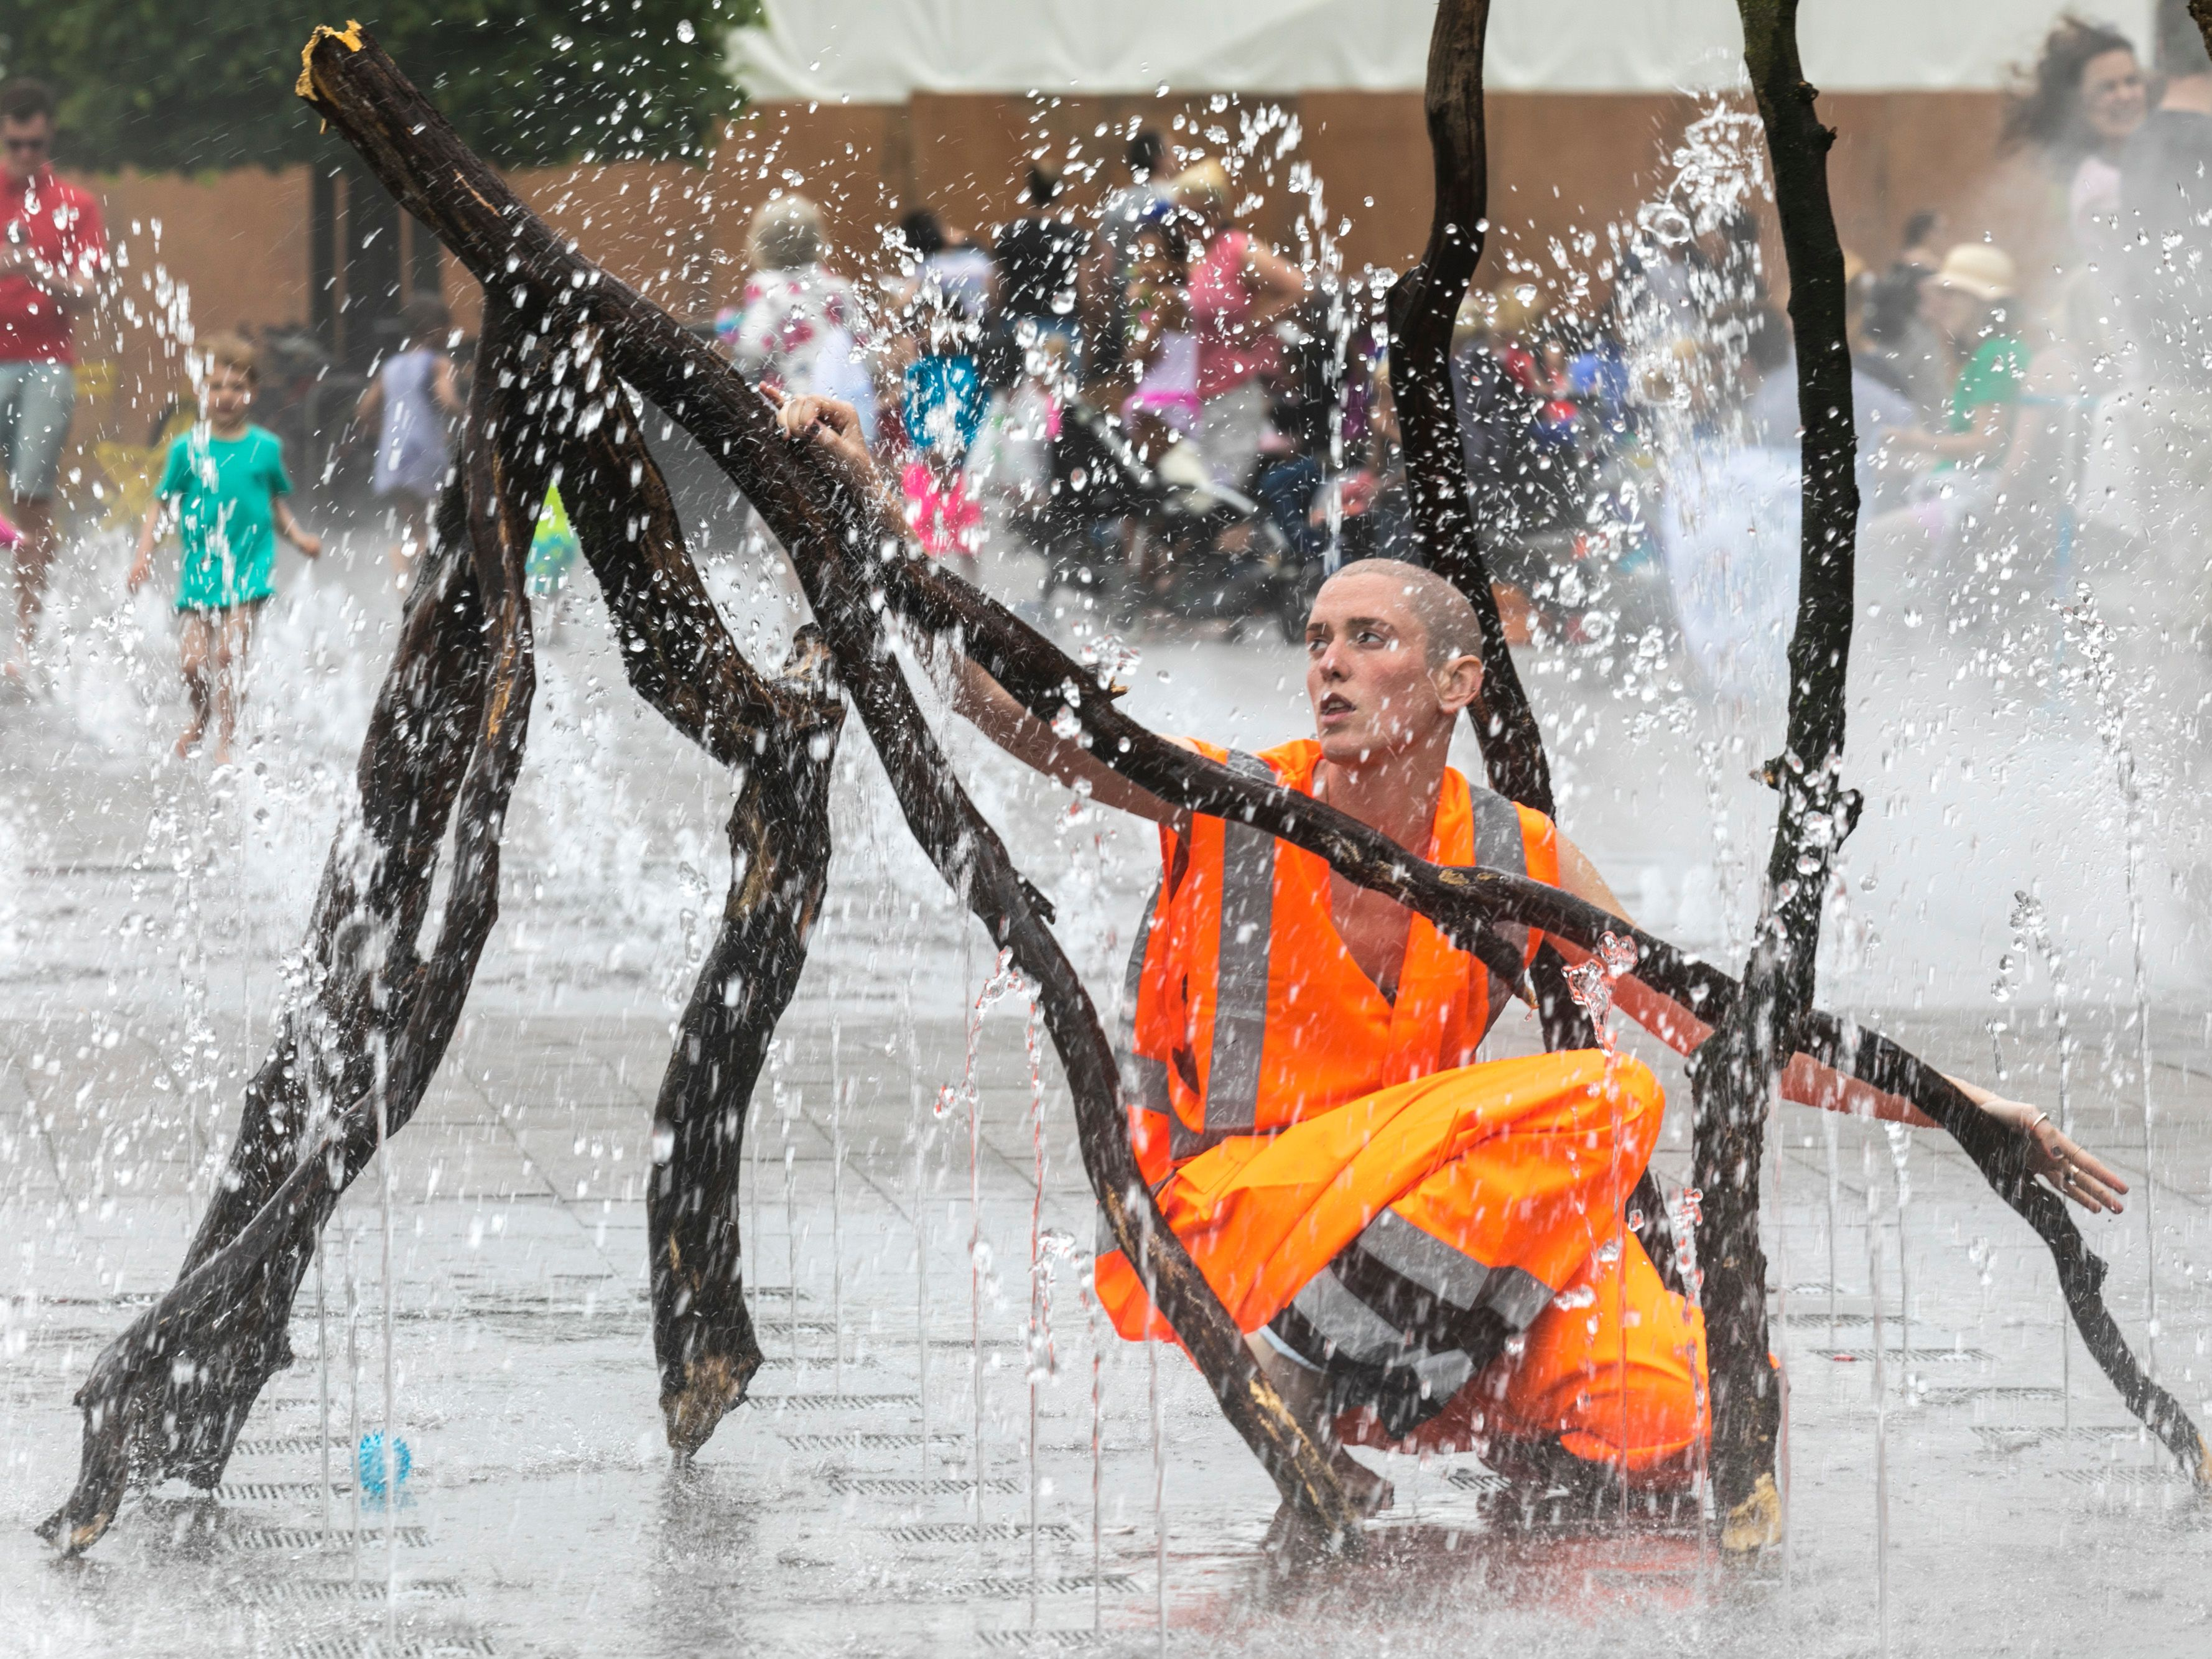 A person wearing an orange hi-vis jacket holding a branch in the Granary Square fountains